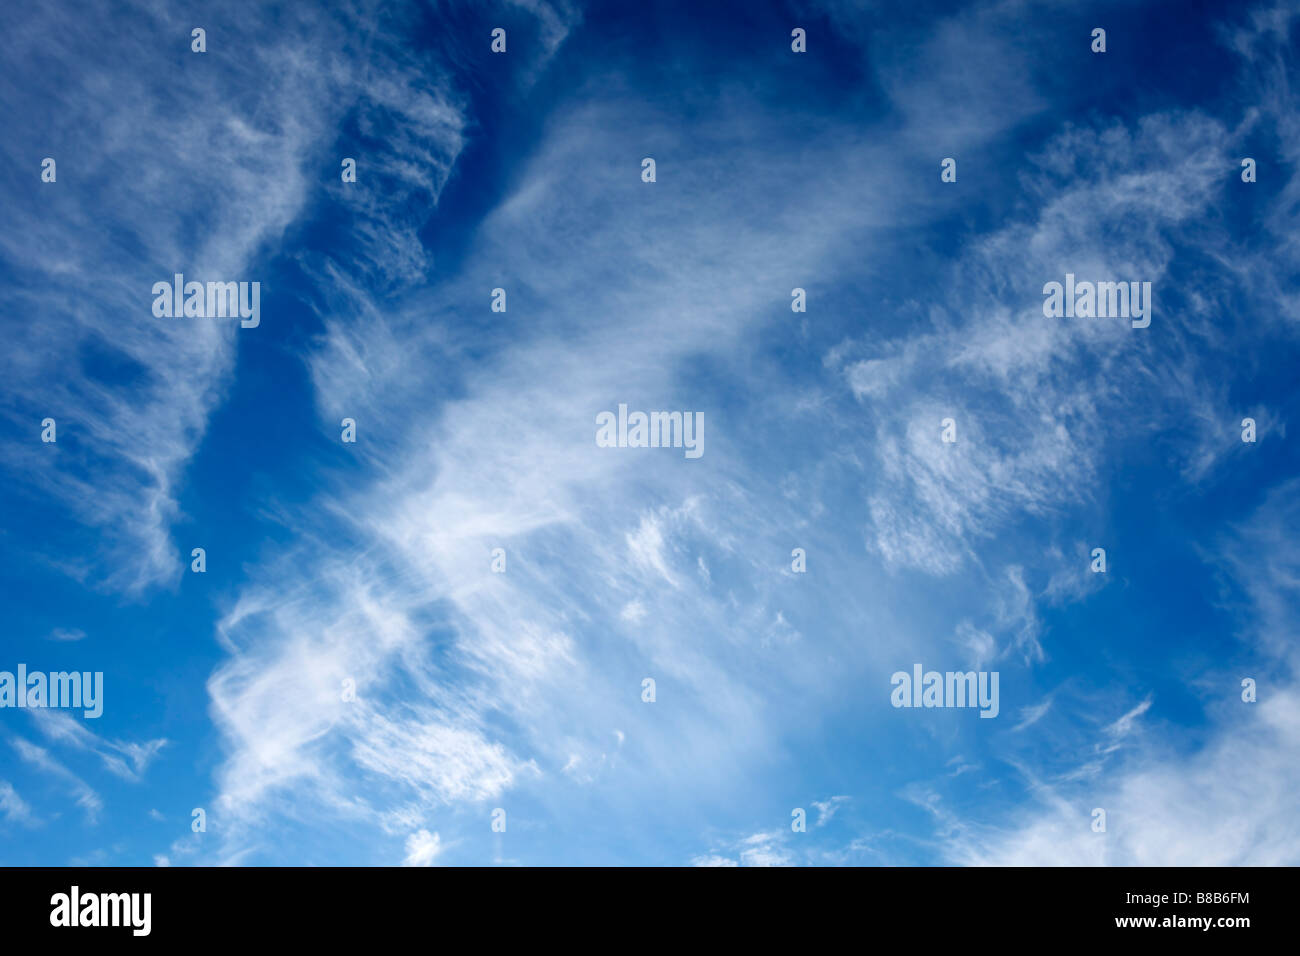 Blue sky with white wispy clouds - Stock Image